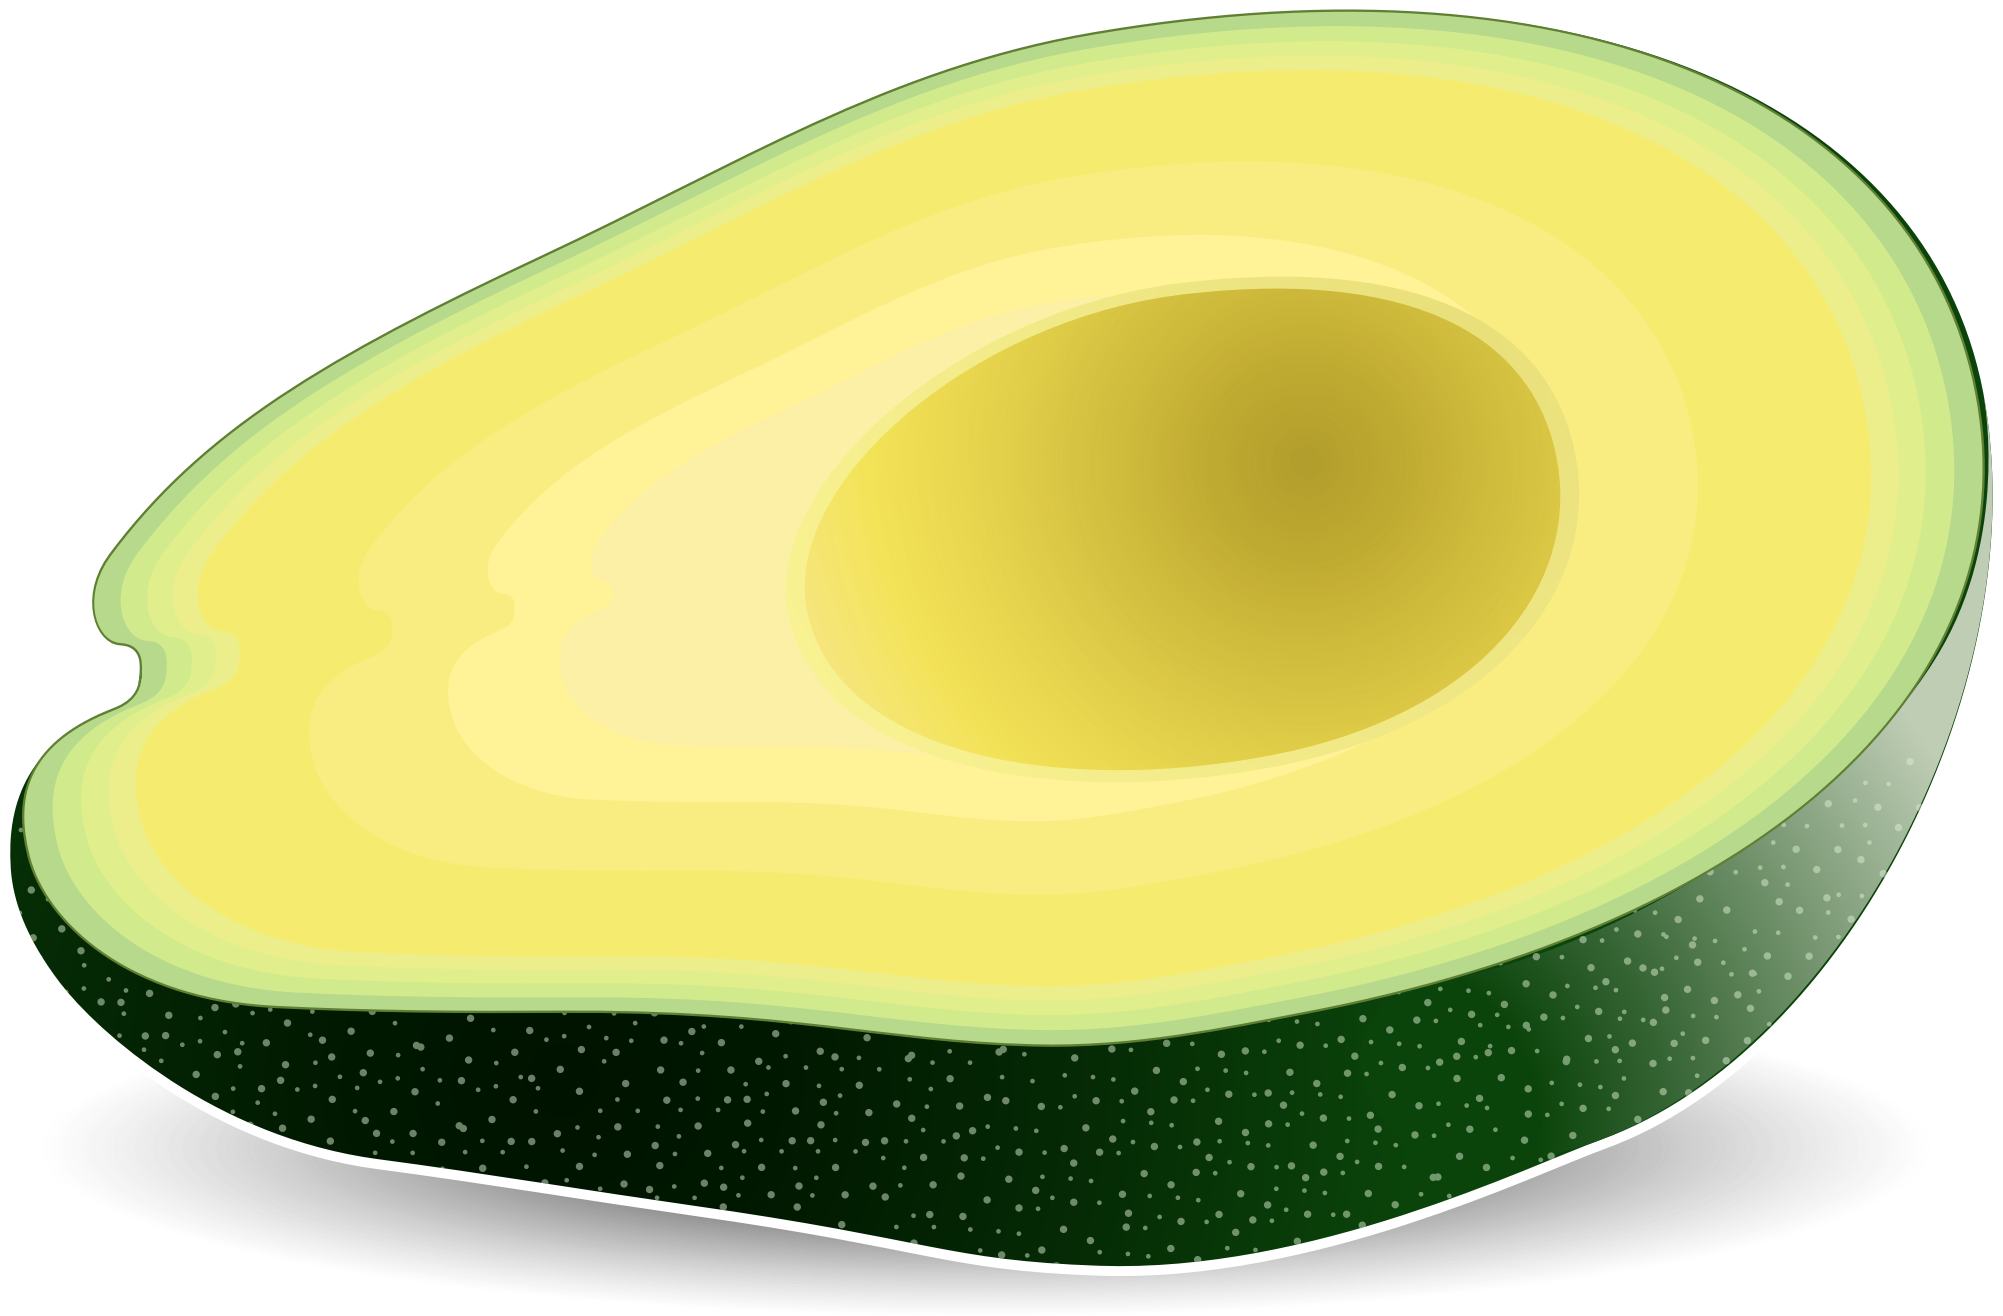 Vegetable clipart avocado. Big image png